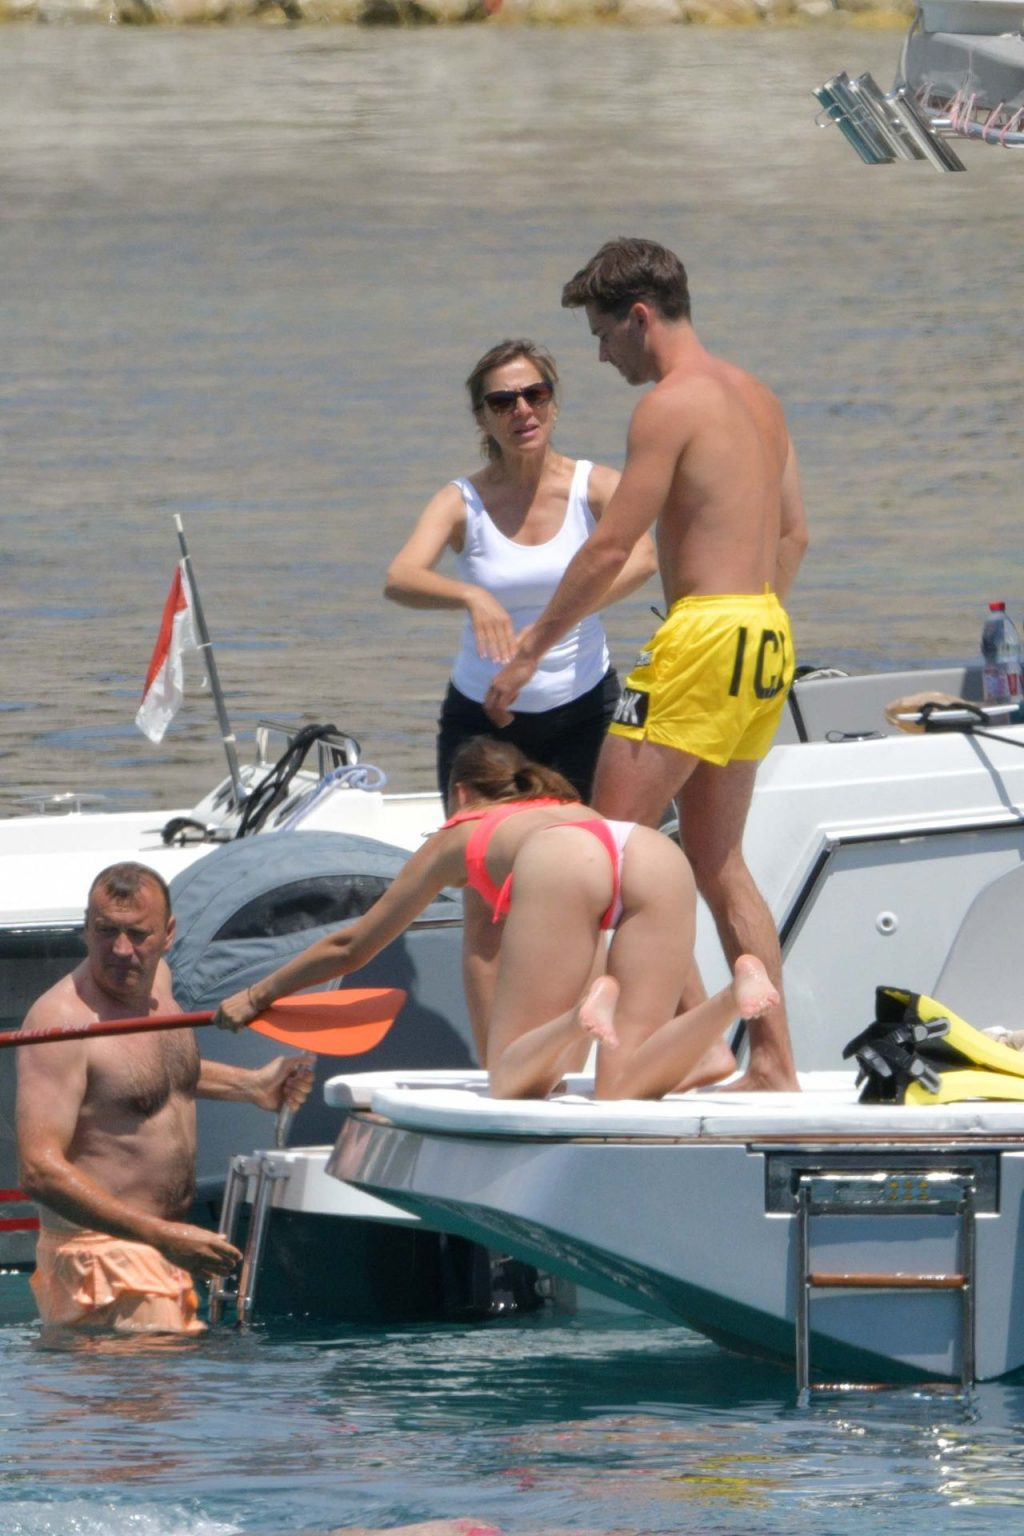 Charles Leclerc & Charlotte Siné Look Loved Up On Speedboat In Monaco (67 Photos)